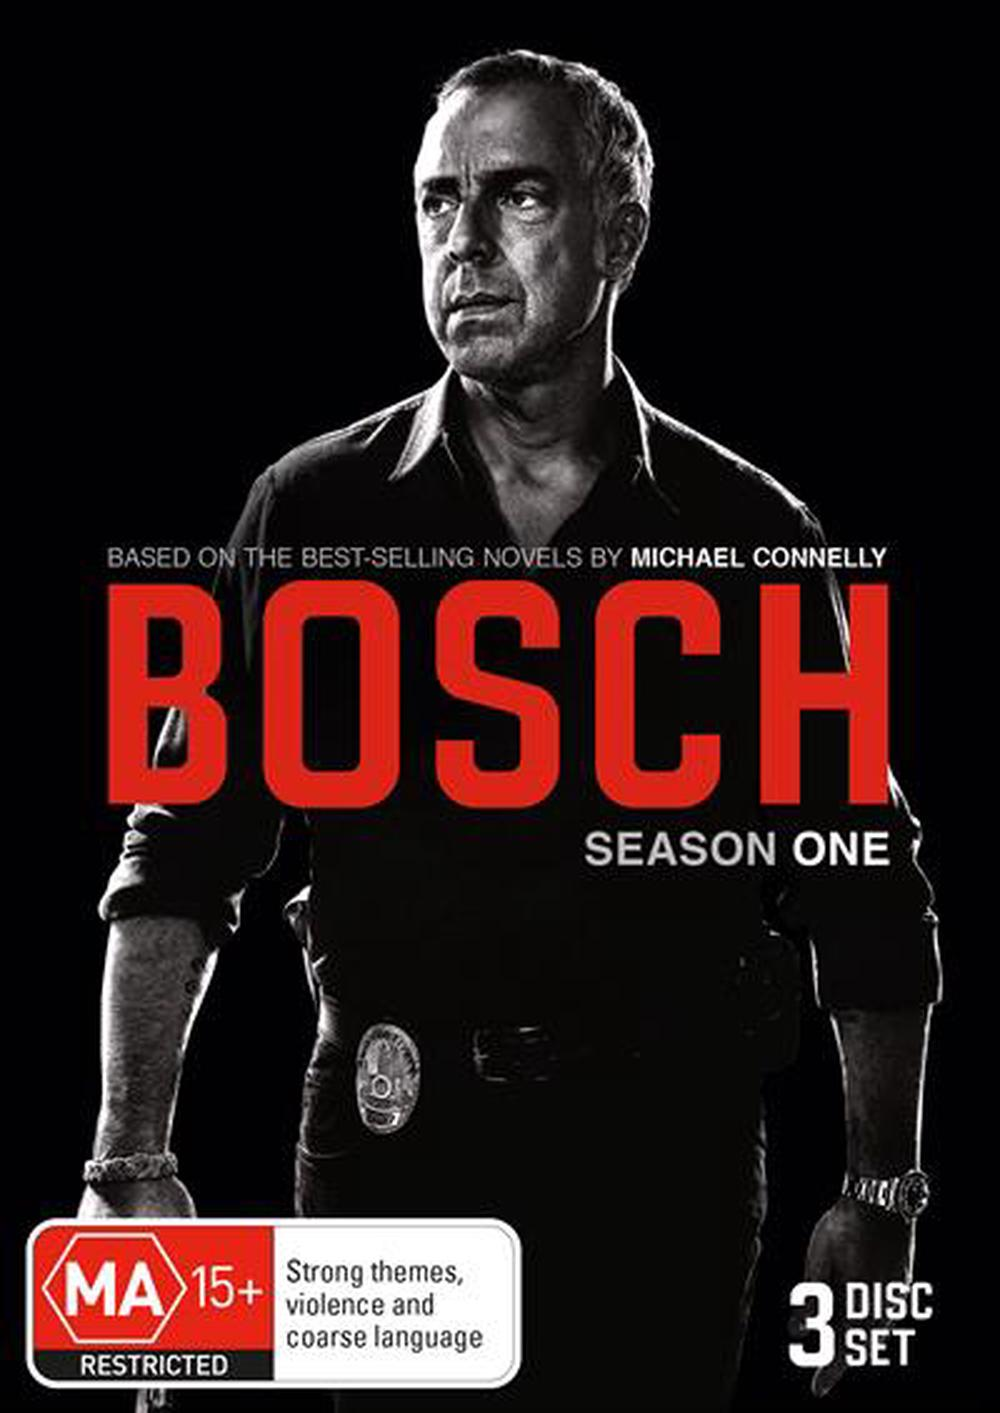 Bosch : Season 1, DVD | Buy online at The Nile